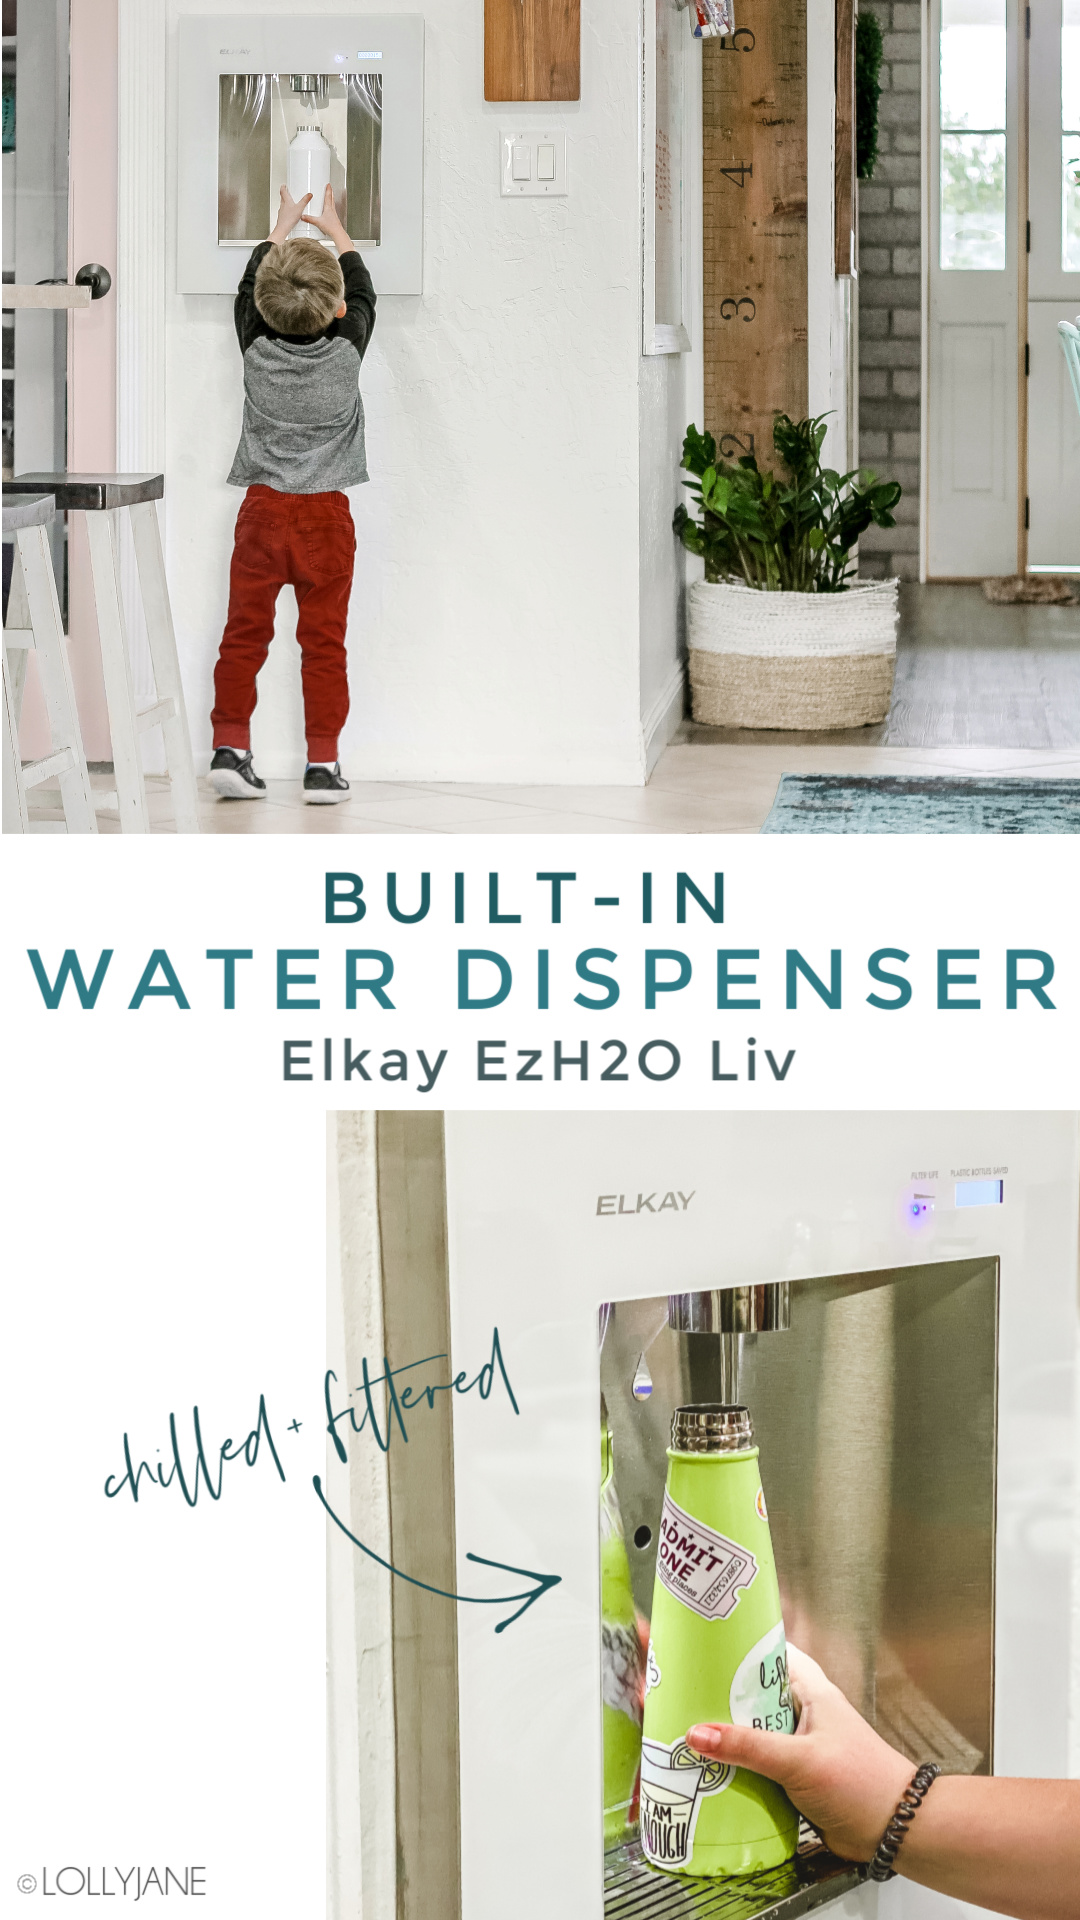 A built-in water dispenser that is kid friendly, chic, and a great reminder to DRINK YOUR WATER! You NEED the @Elkay_ USA ezH2O Liv built-in filtered water dispenser 😅💦#waterdispenser #gogreen